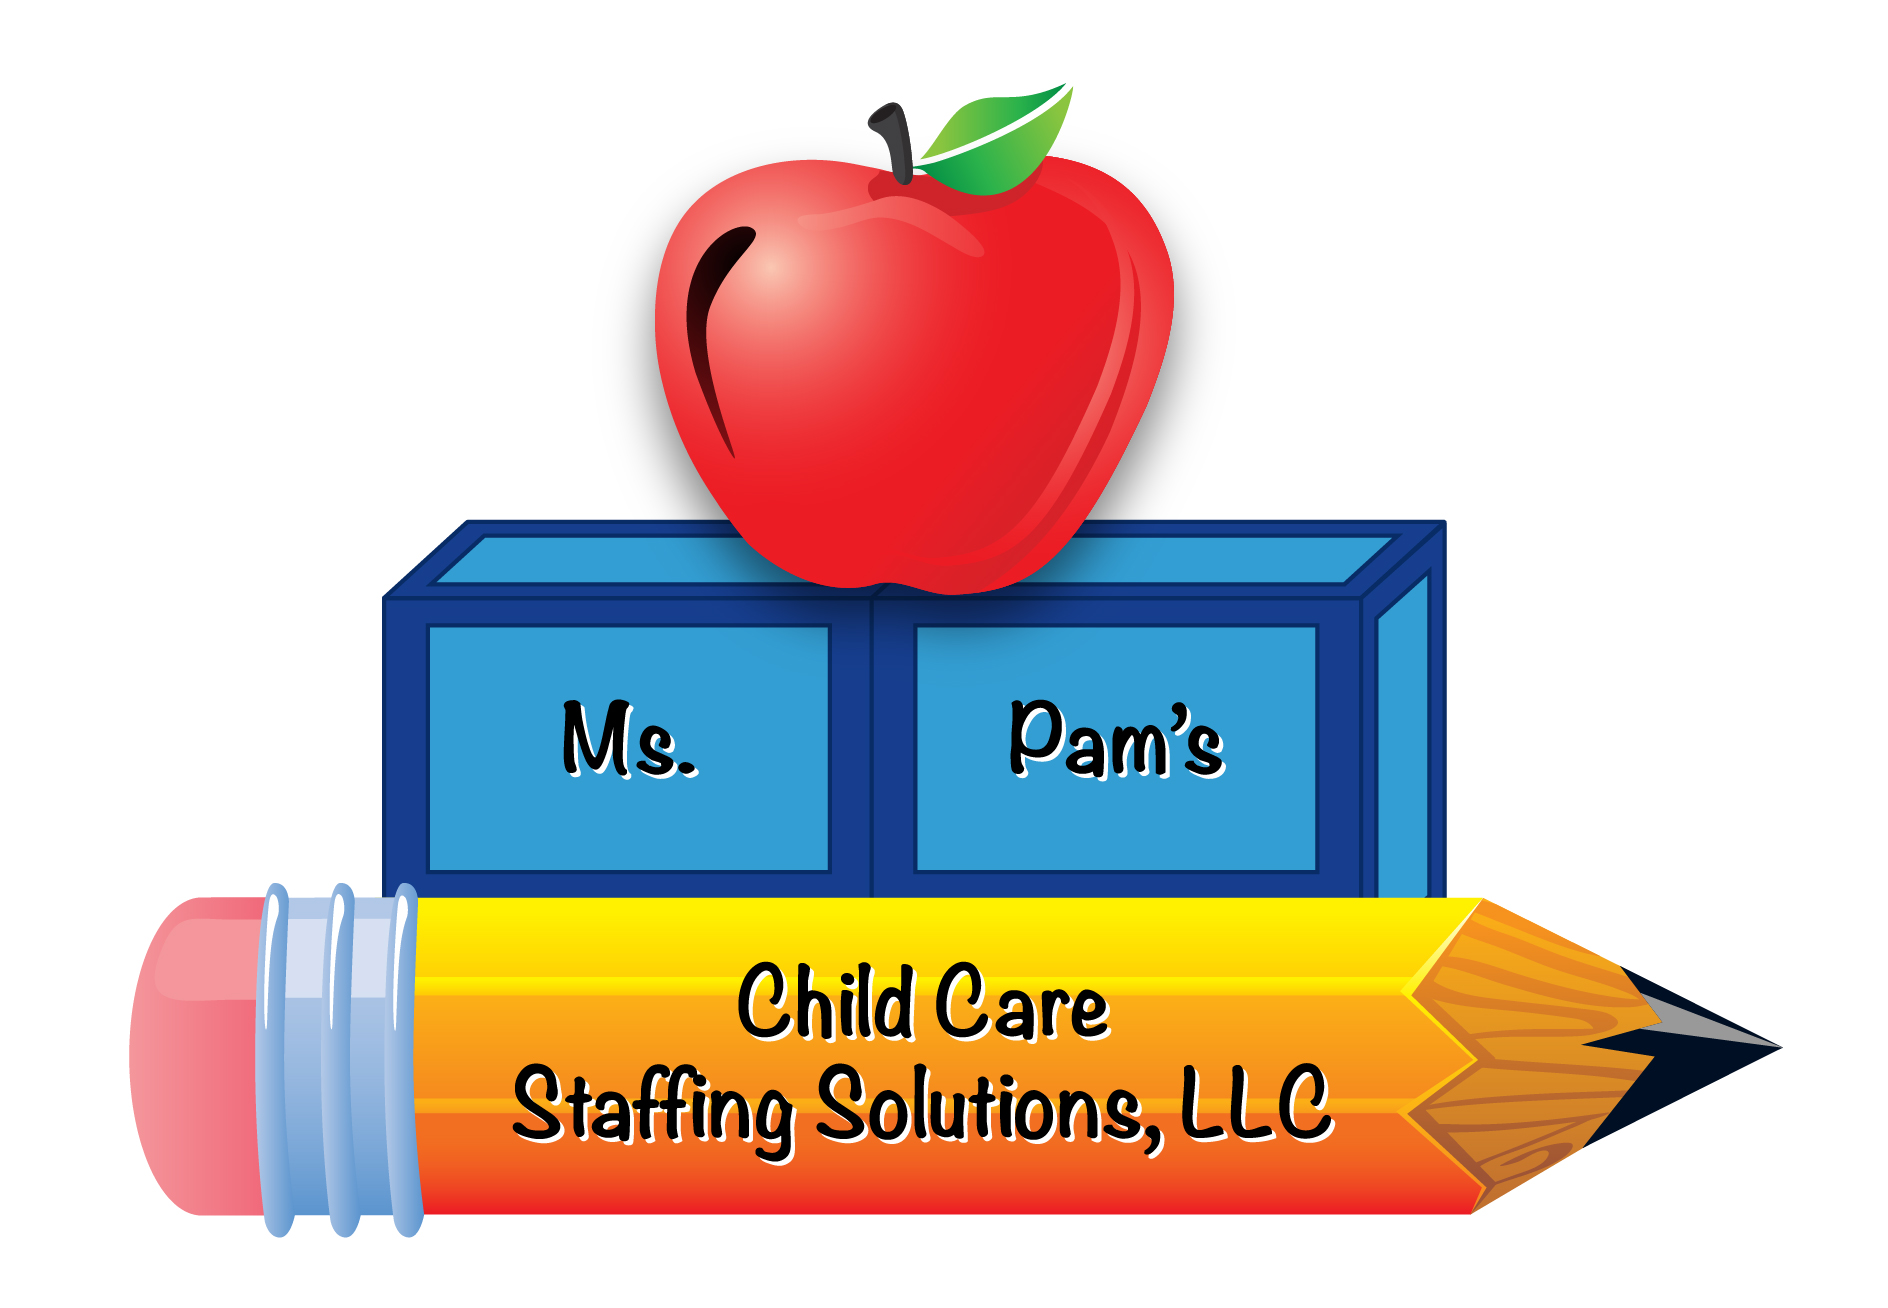 Ms. Pam's Child Care Staffing Solutions, LLC Logo